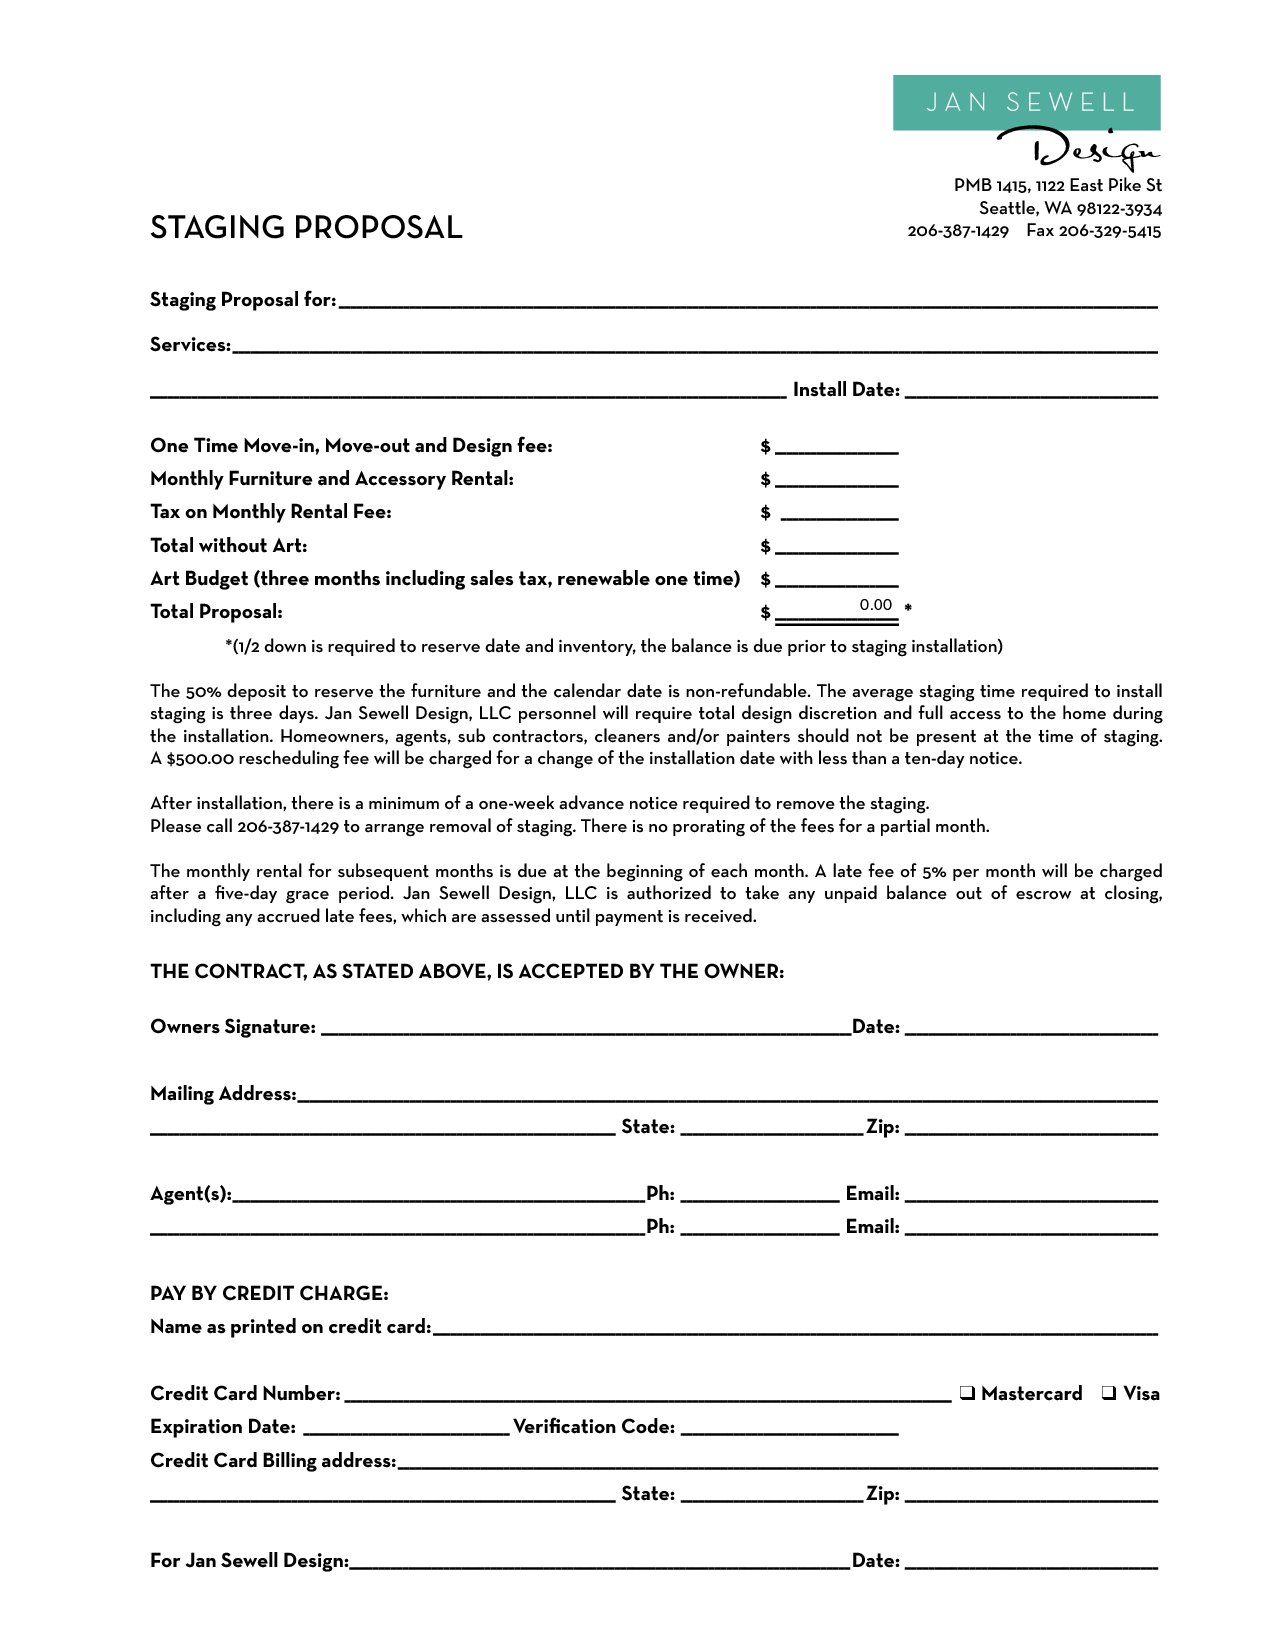 Home Staging Contract Template Bing Images Stg